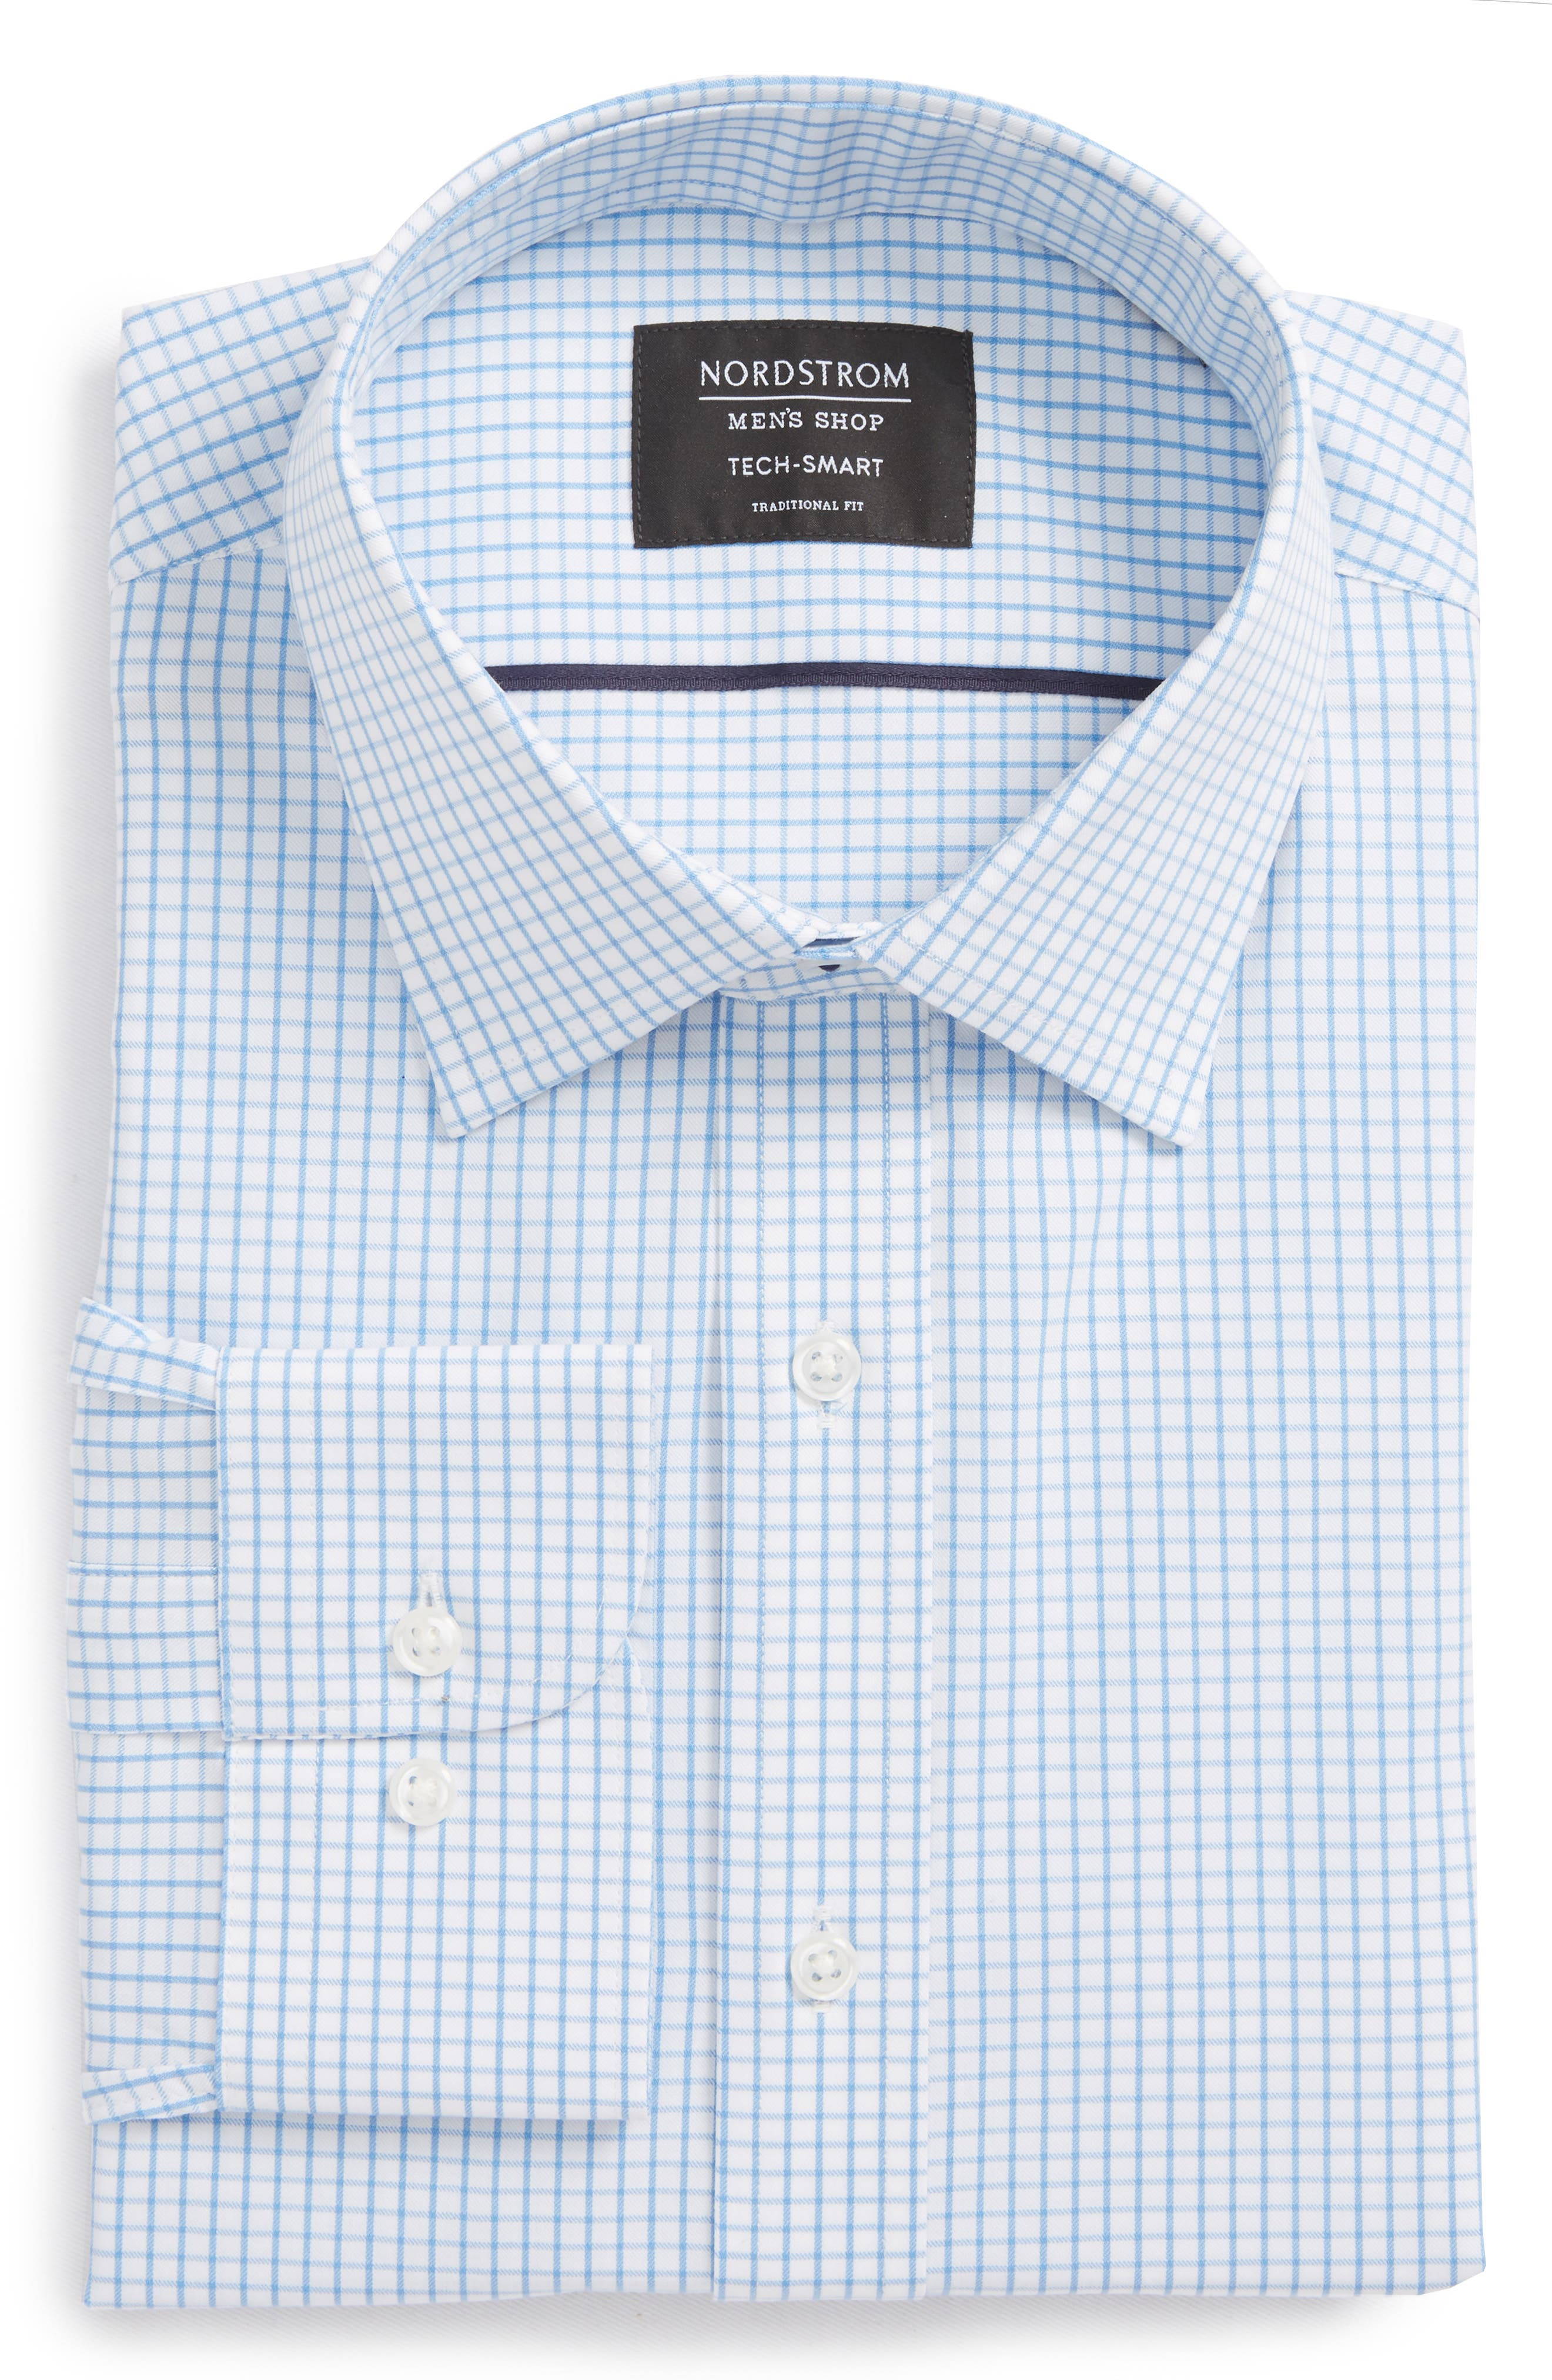 Tech-Smart Traditional Fit Stretch Tattersall Dress Shirt,                         Main,                         color, Blue Lake